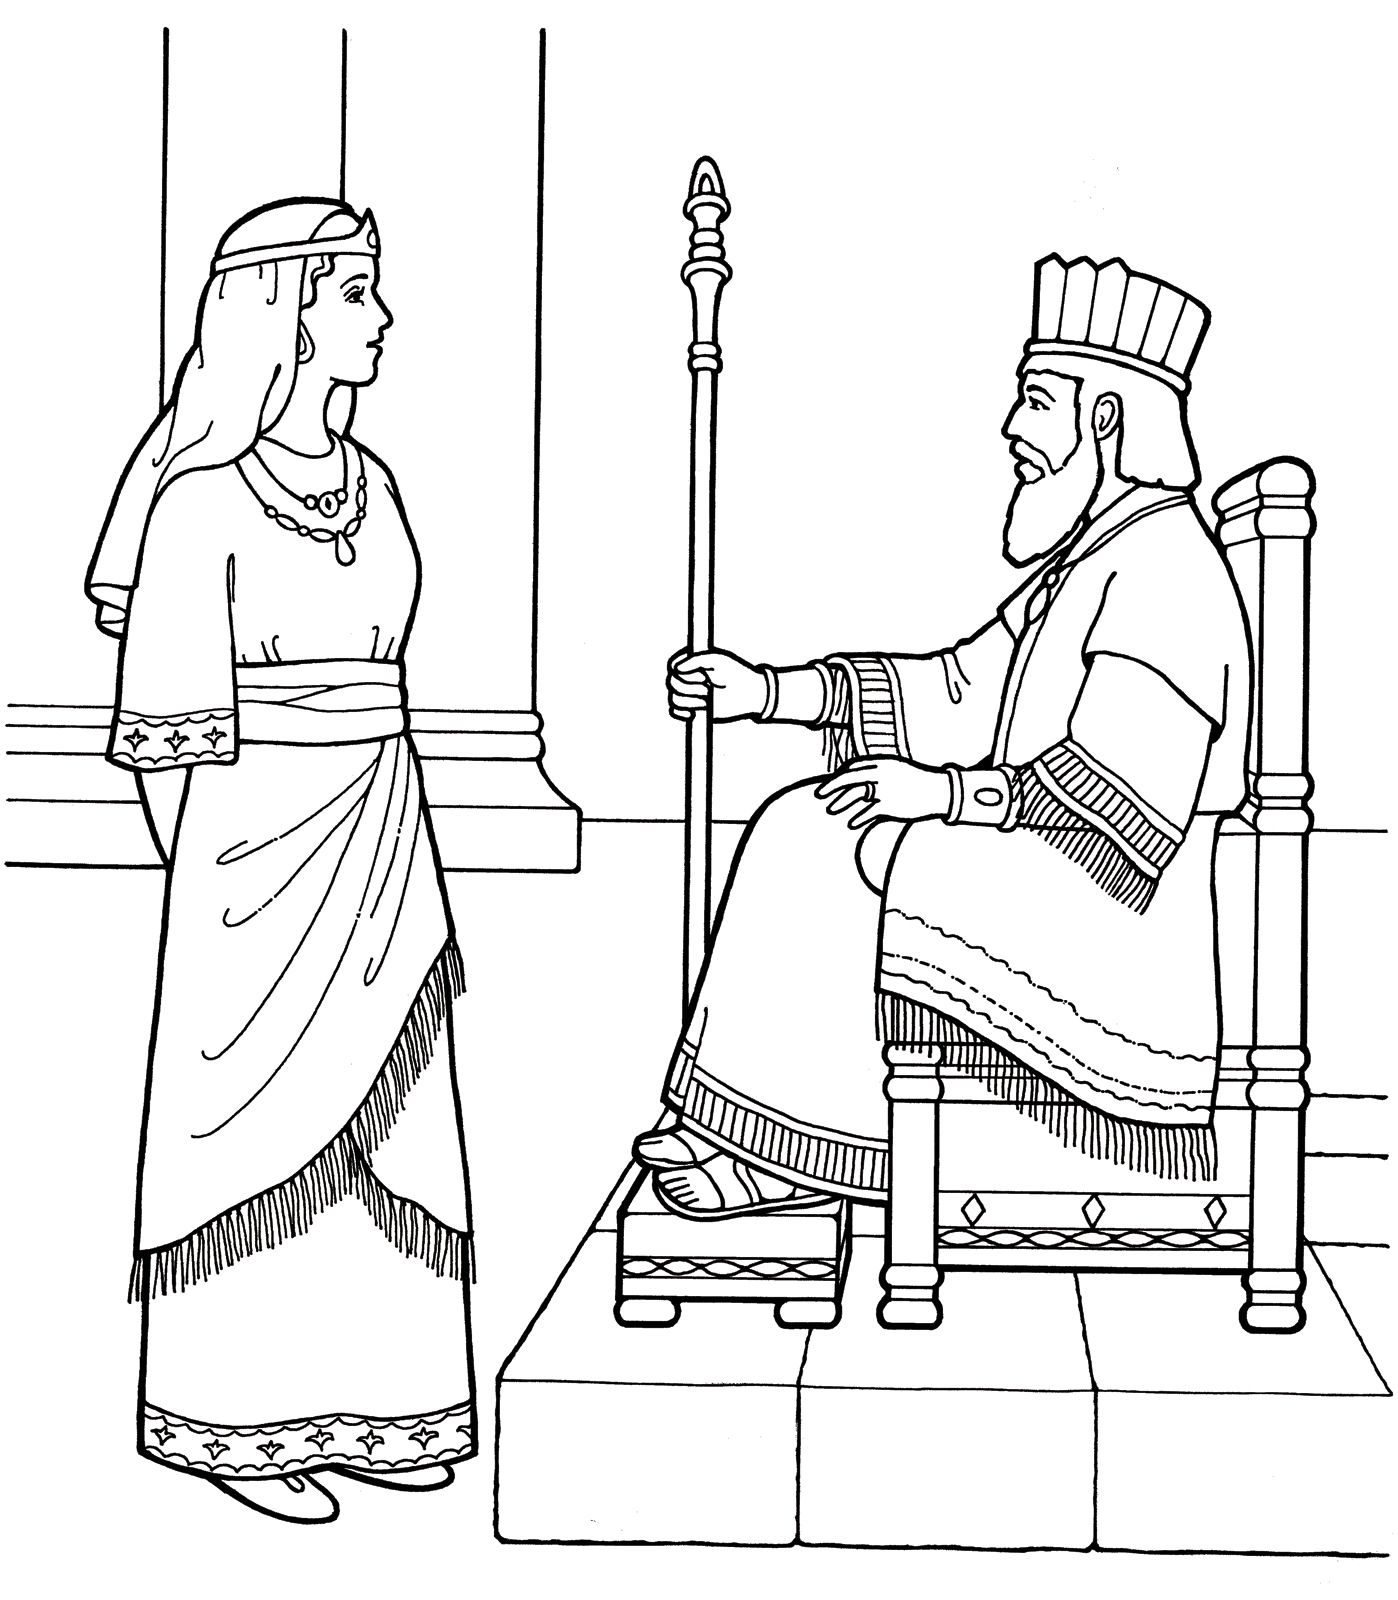 An Lds Primary Coloring Page From Lds Org Queen Esther With The King Ldsprimary Bible Coloring Pages Bible Coloring Bible Crafts